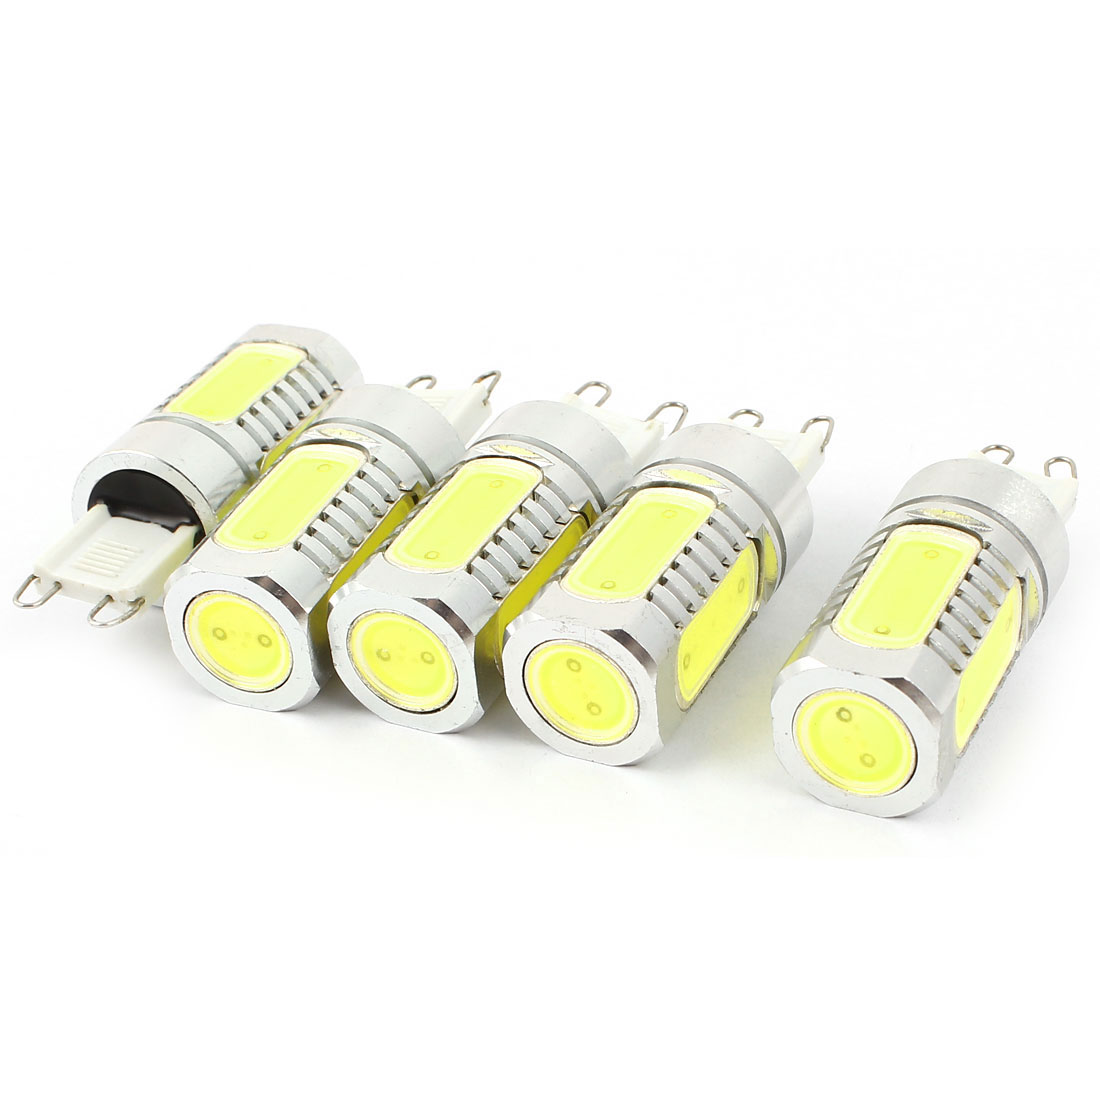 5 Pcs Energy Saving G9 6D 7.5W 5 COB LED Bulb Lamp Light White DC12V